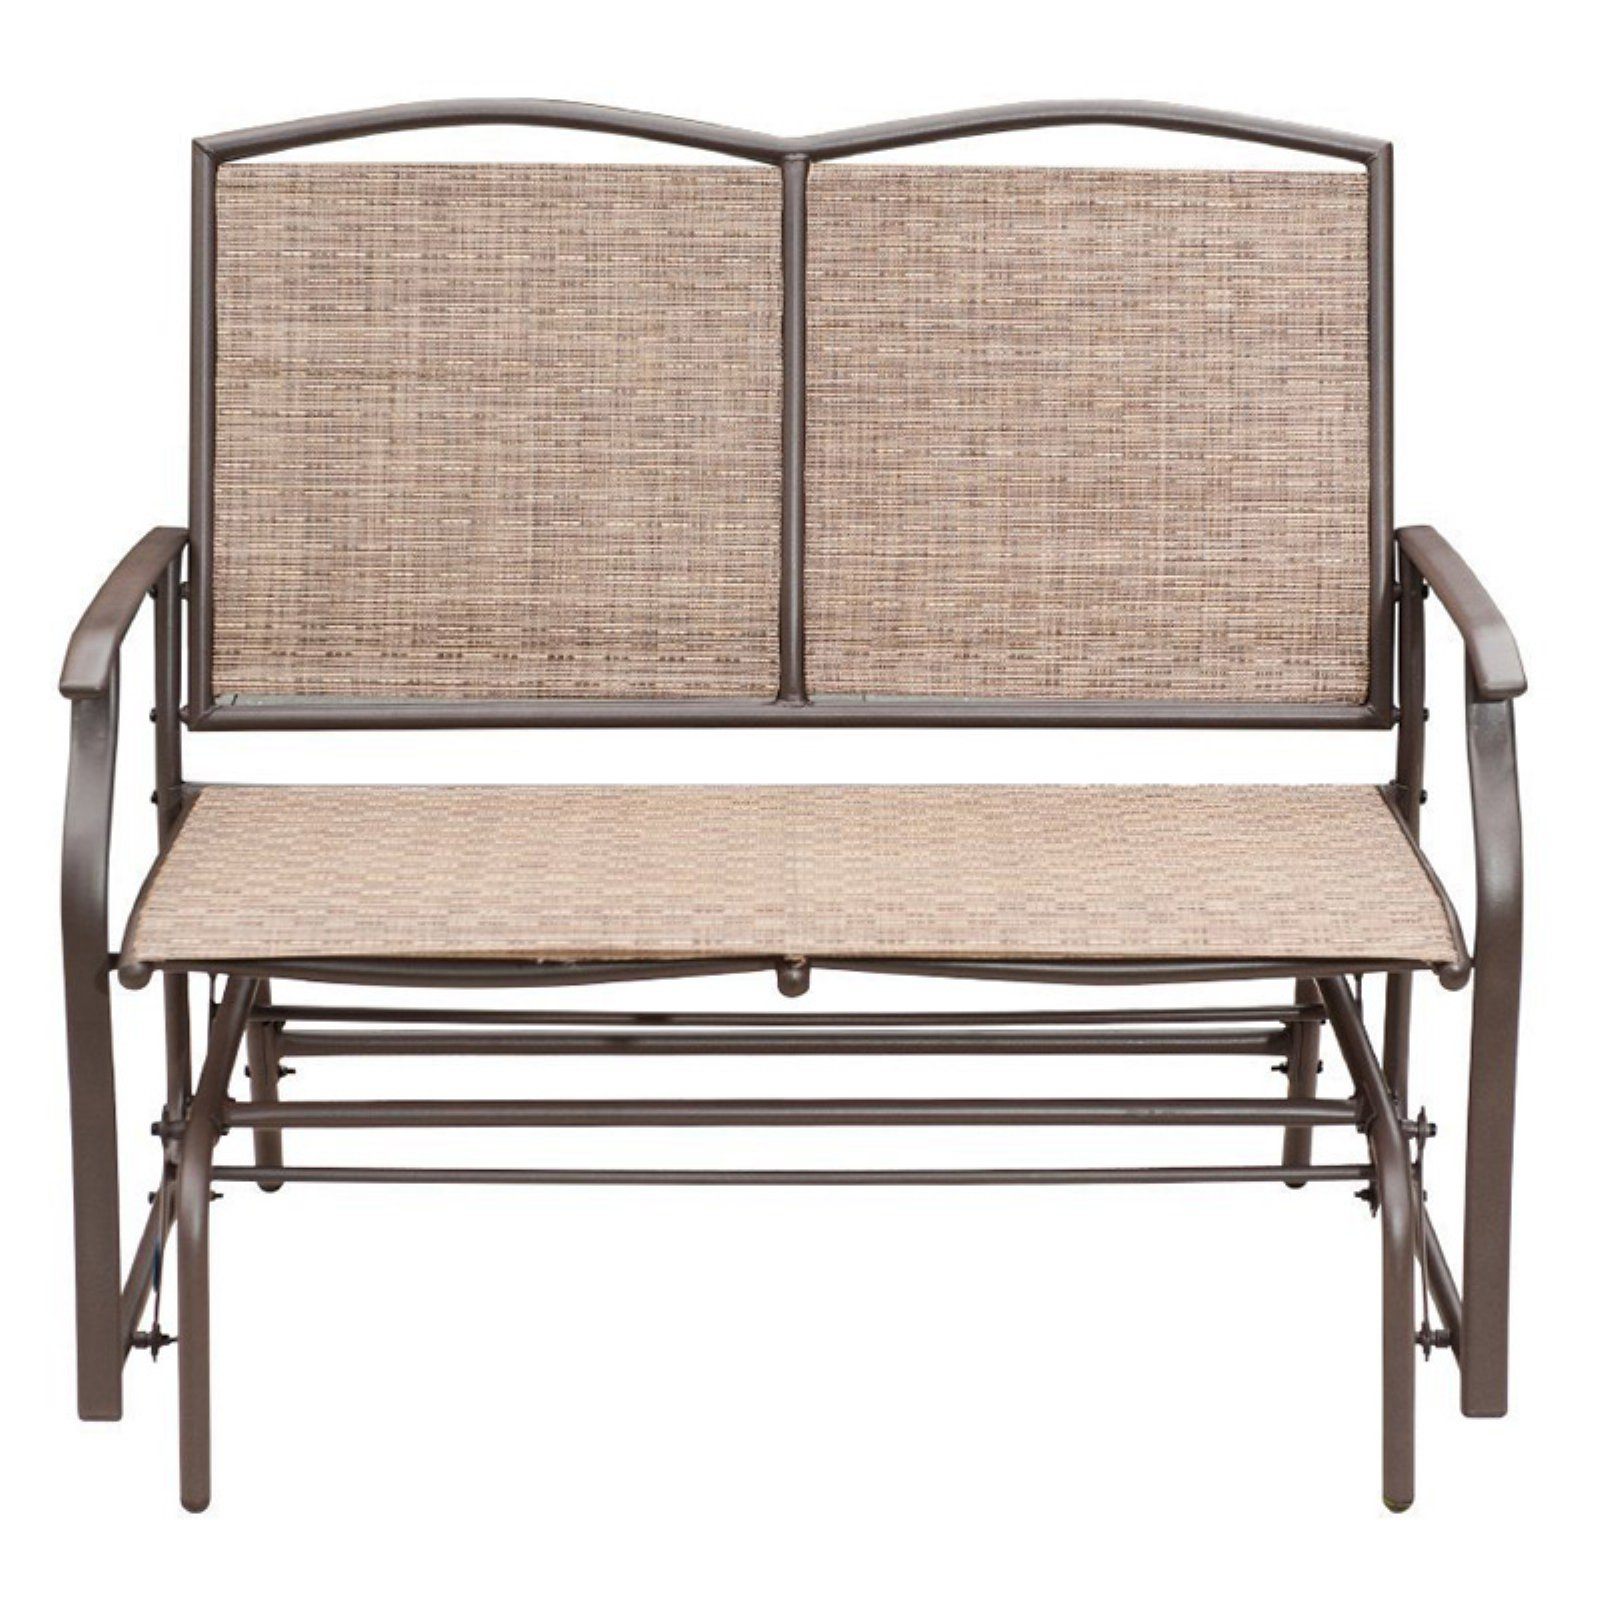 SunLife 2 Person Rattan Loveseat Patio Glider Bench